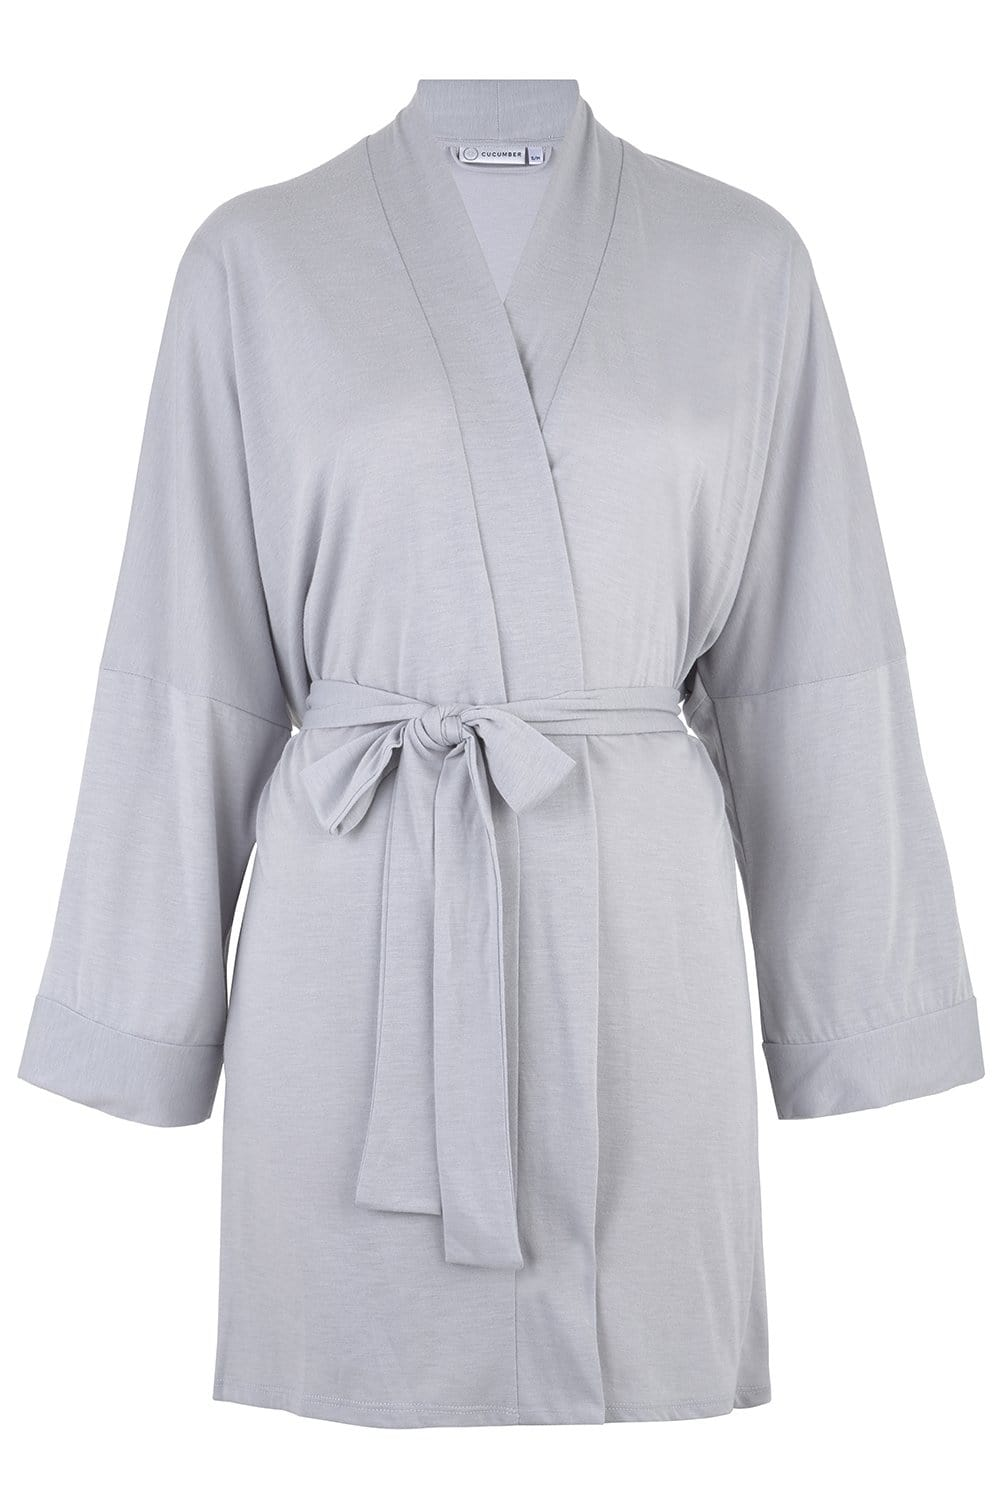 Dressing Gowns - Cucumber Clothing Limited